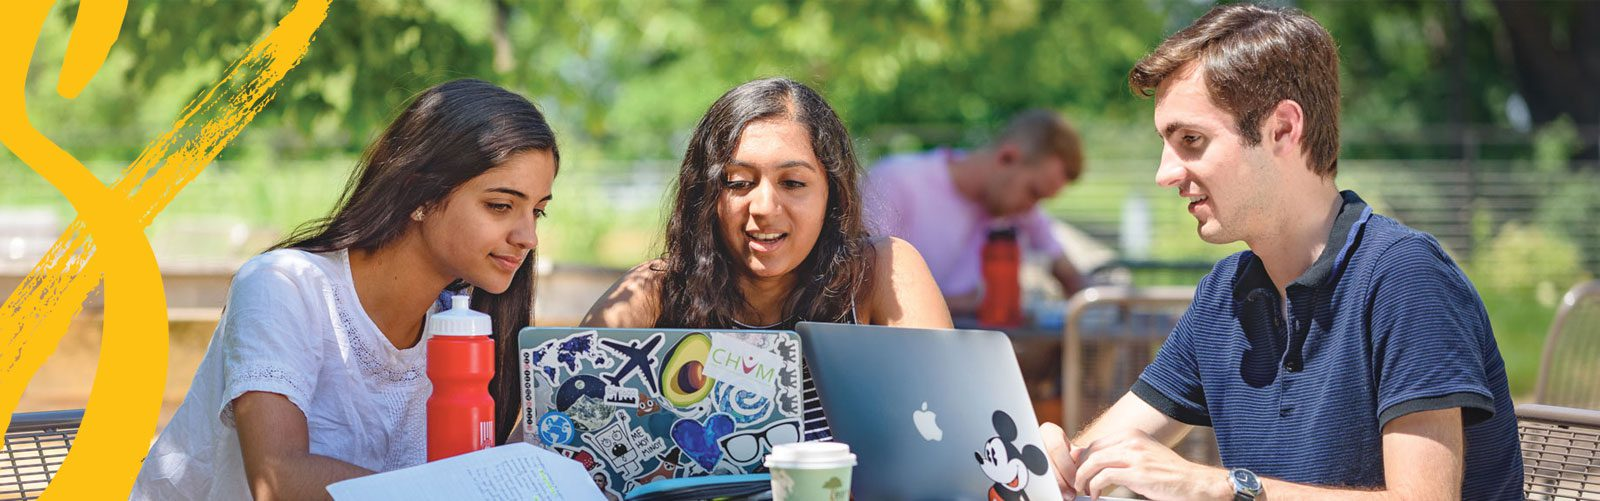 Summer student leaders working outside on laptops on a beautiful summer day.